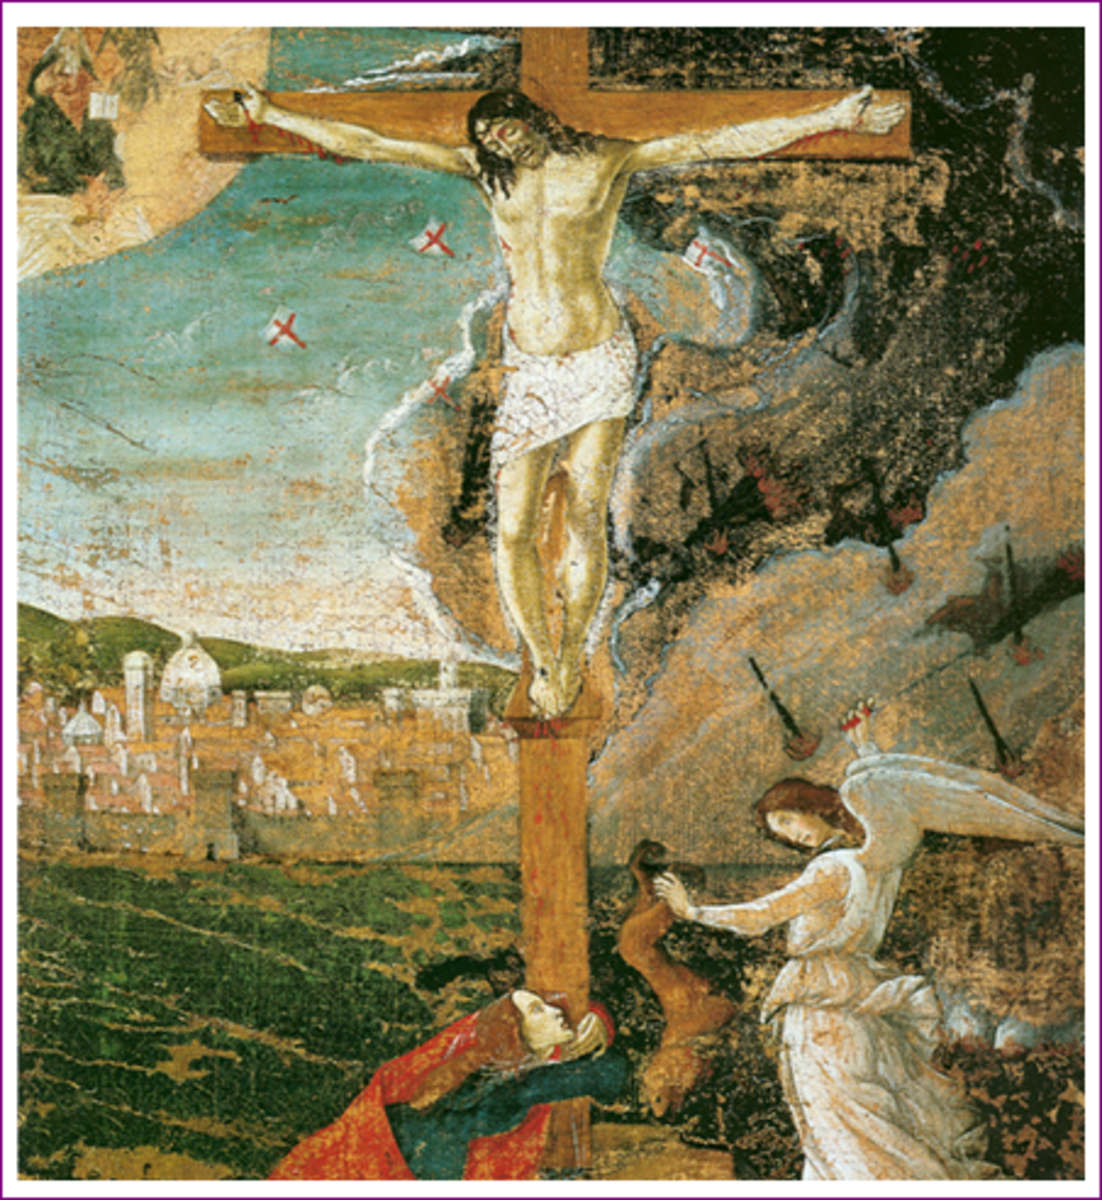 This painting shows an image that depicts the state of Florence and its fate in the background. It shows a flourishing town with a bright future. It shows Christ on the cross and beside him is a weeping angel. On the fore ground is Mary Magda